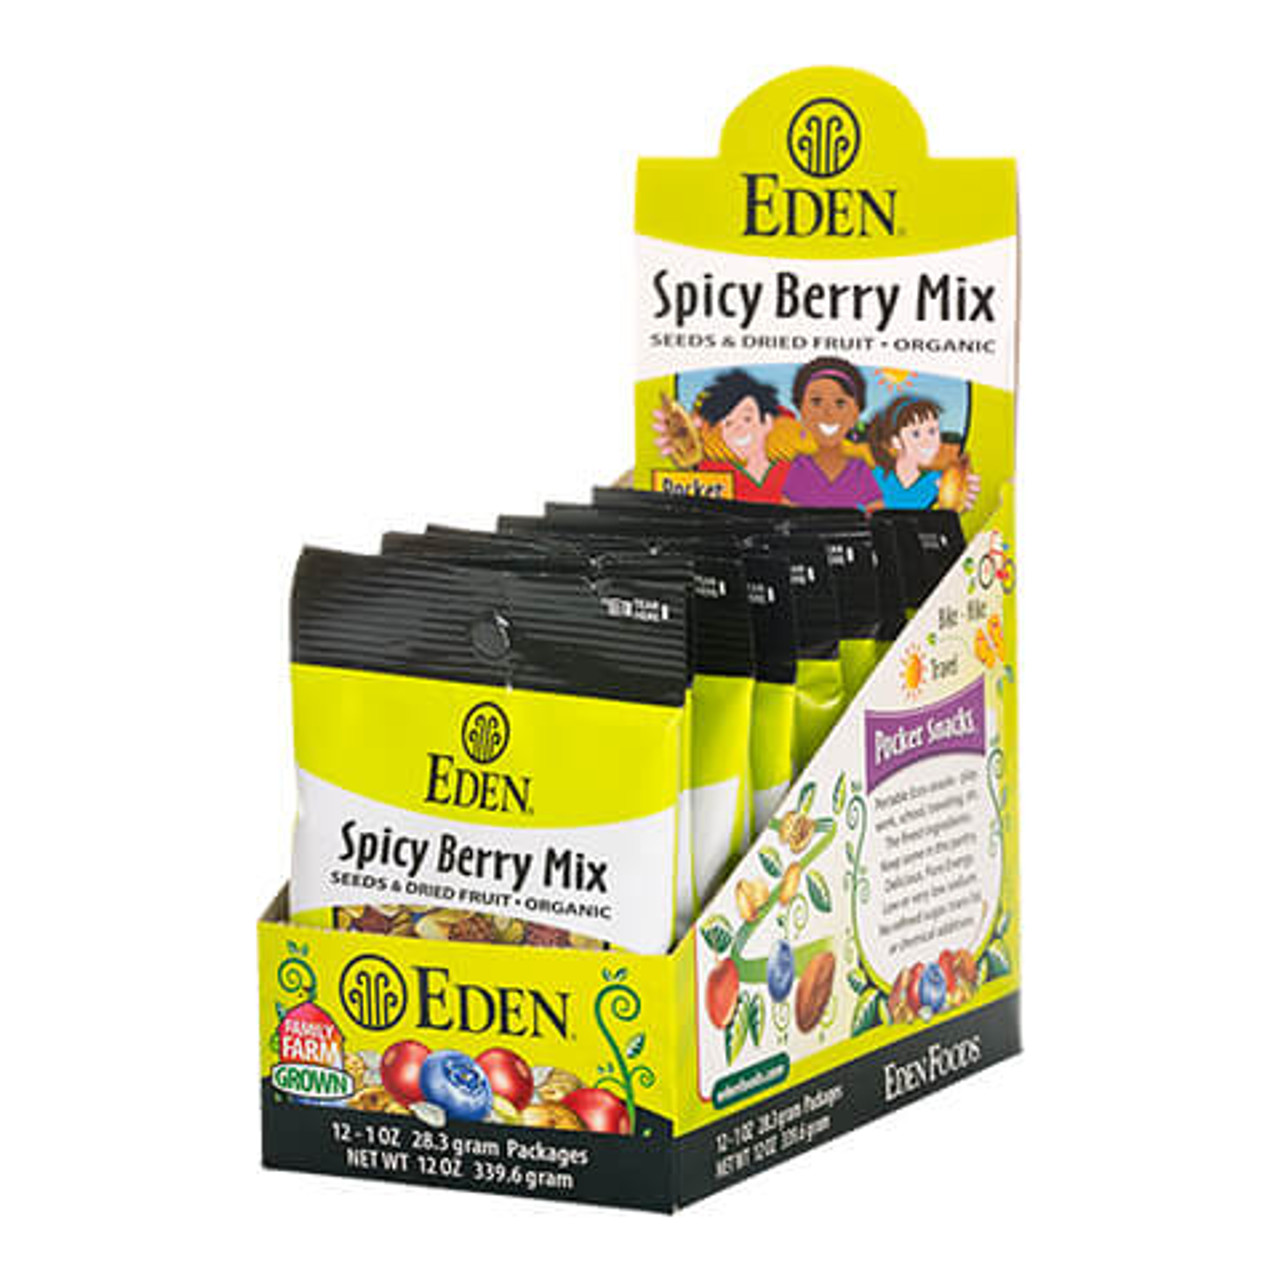 Spicy Berry Mix, Organic Pocket Snacks - 12 pack